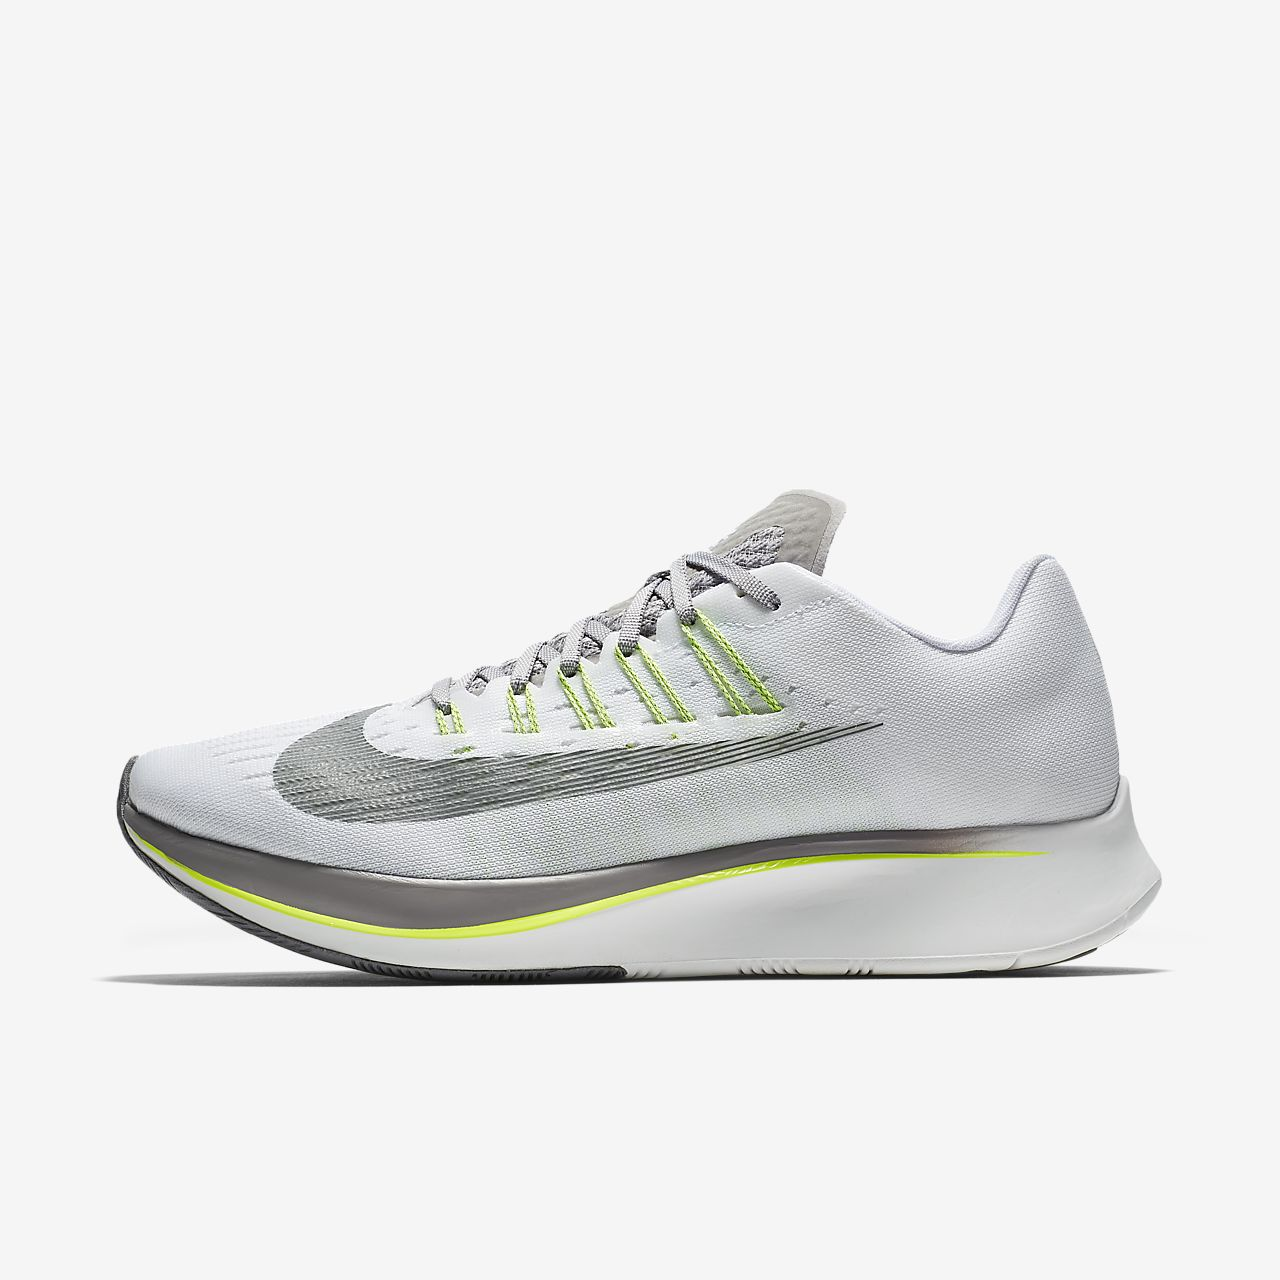 4514535709ec Nike Zoom Fly Men s Running Shoe. Nike.com